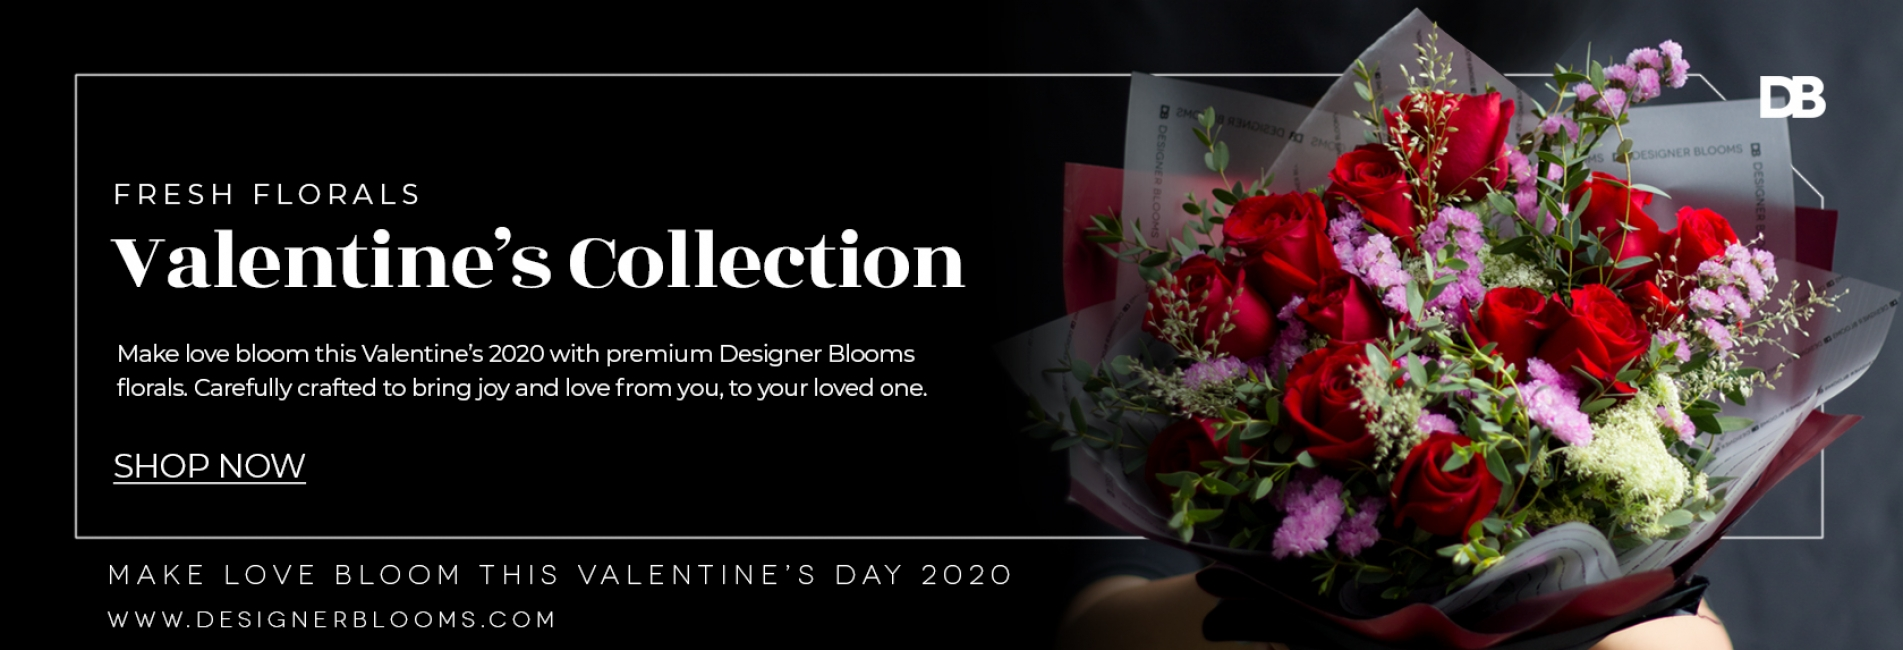 2020-Valentines-Collection-Release